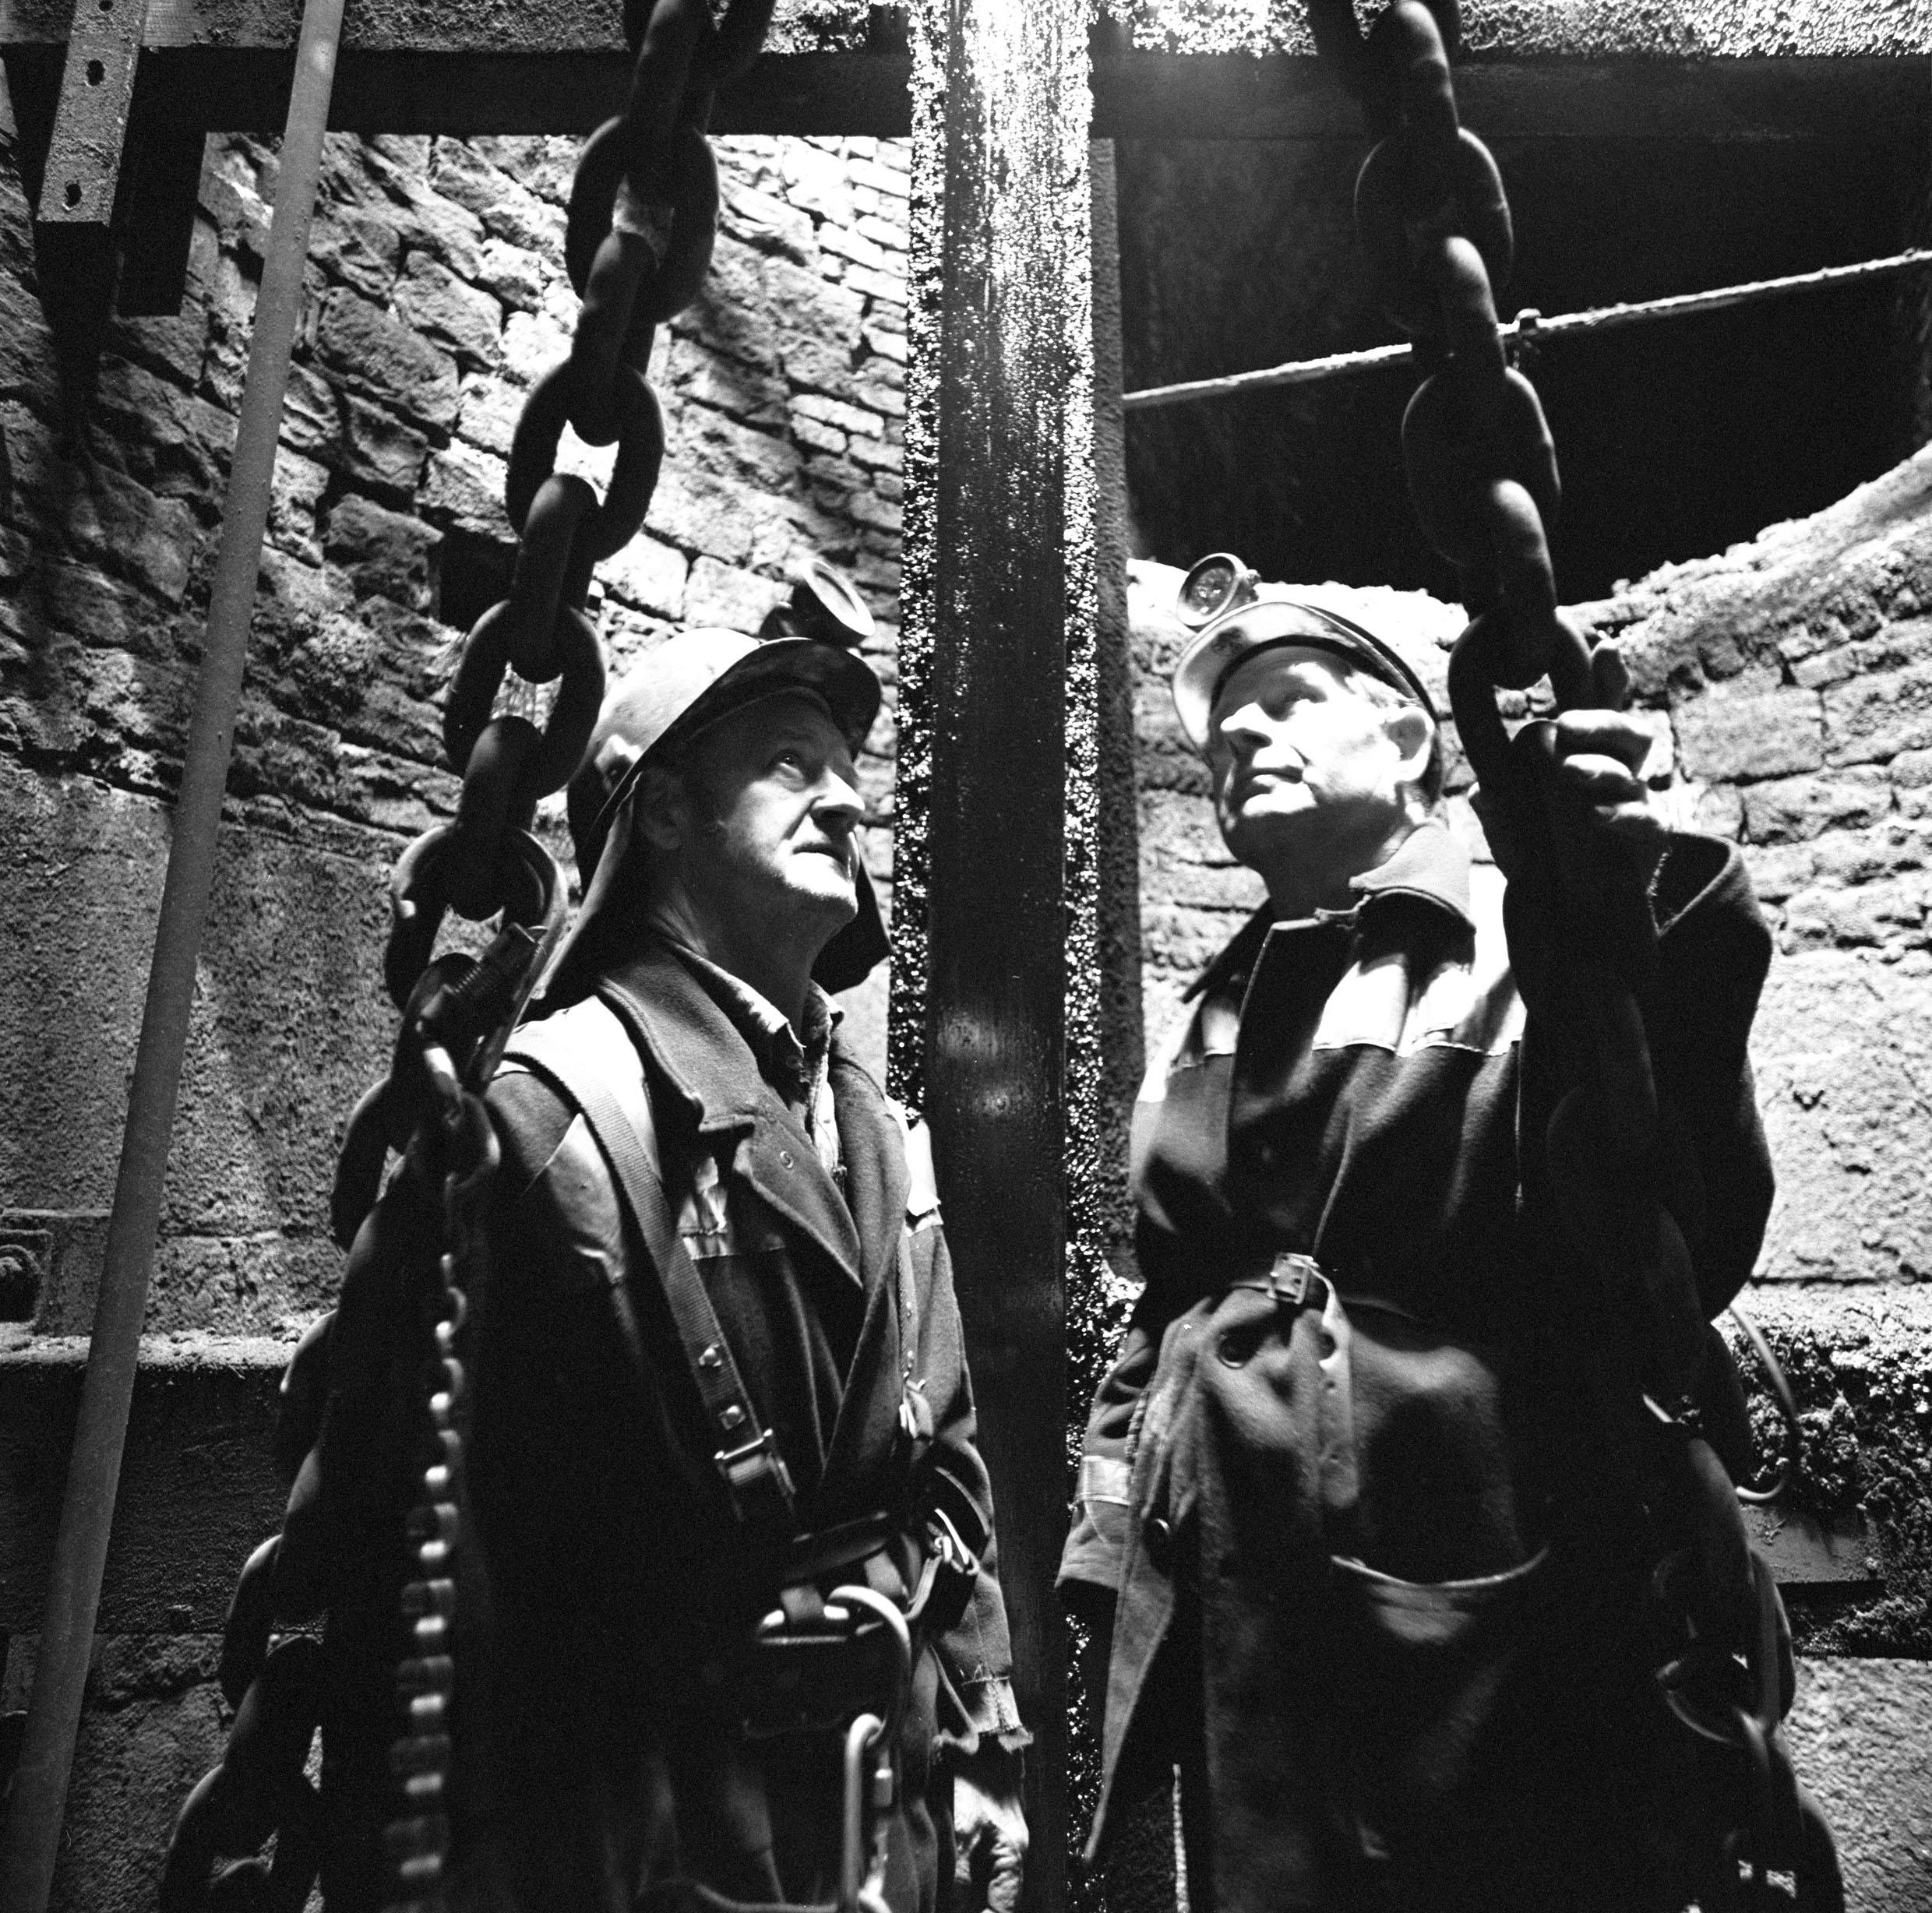 Deep Duffryn Colliery, two pitmen inspecting the shaft from the roof of the cage, 1977-78.